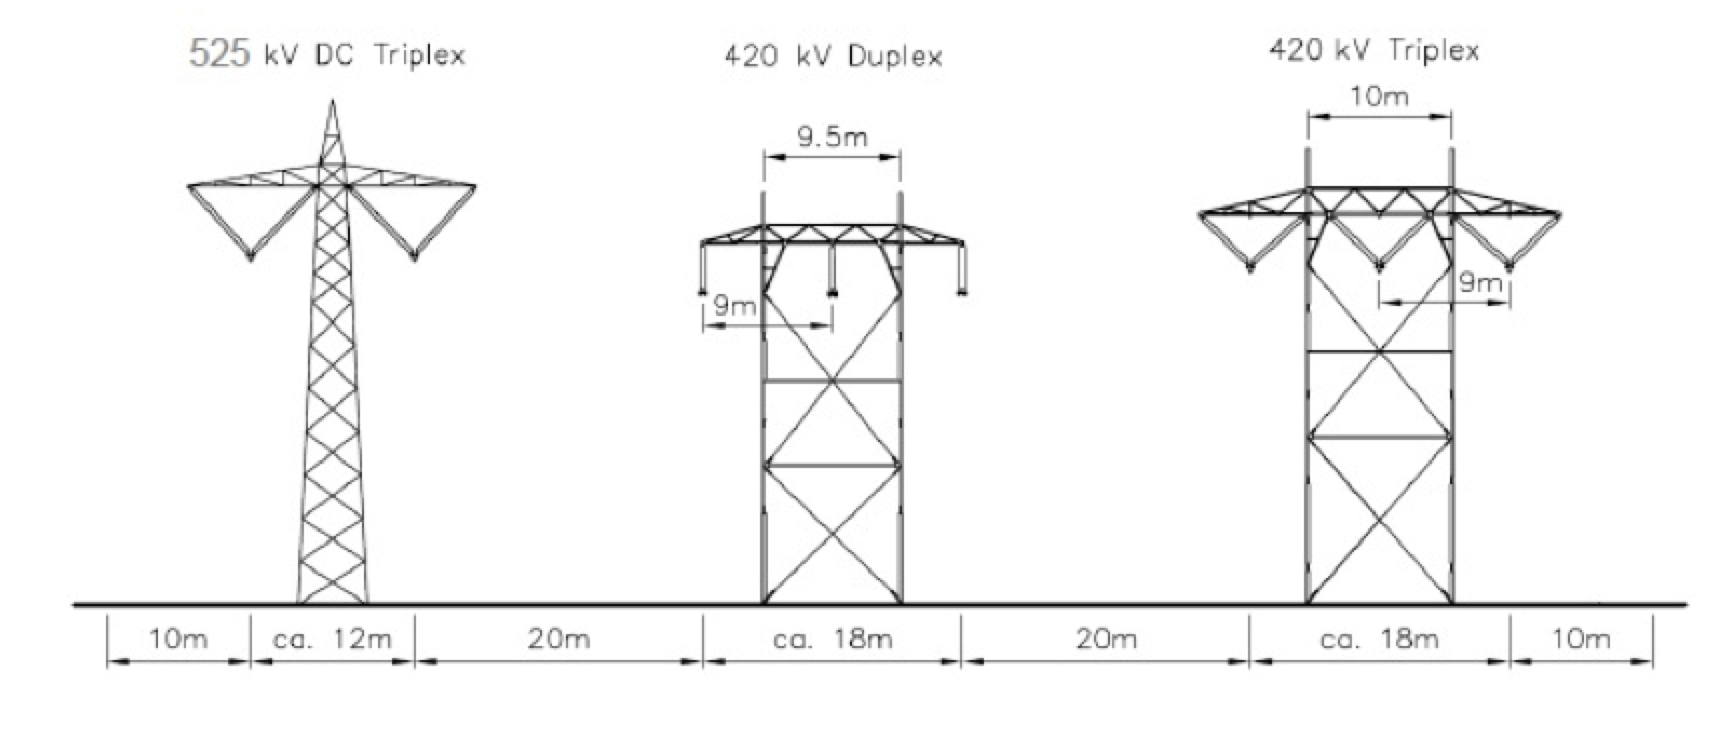 HVDC Line [object object] Design & Installation of Composite Insulators for New ±525 kV DC Line Screen Shot 2017 09 22 at 09